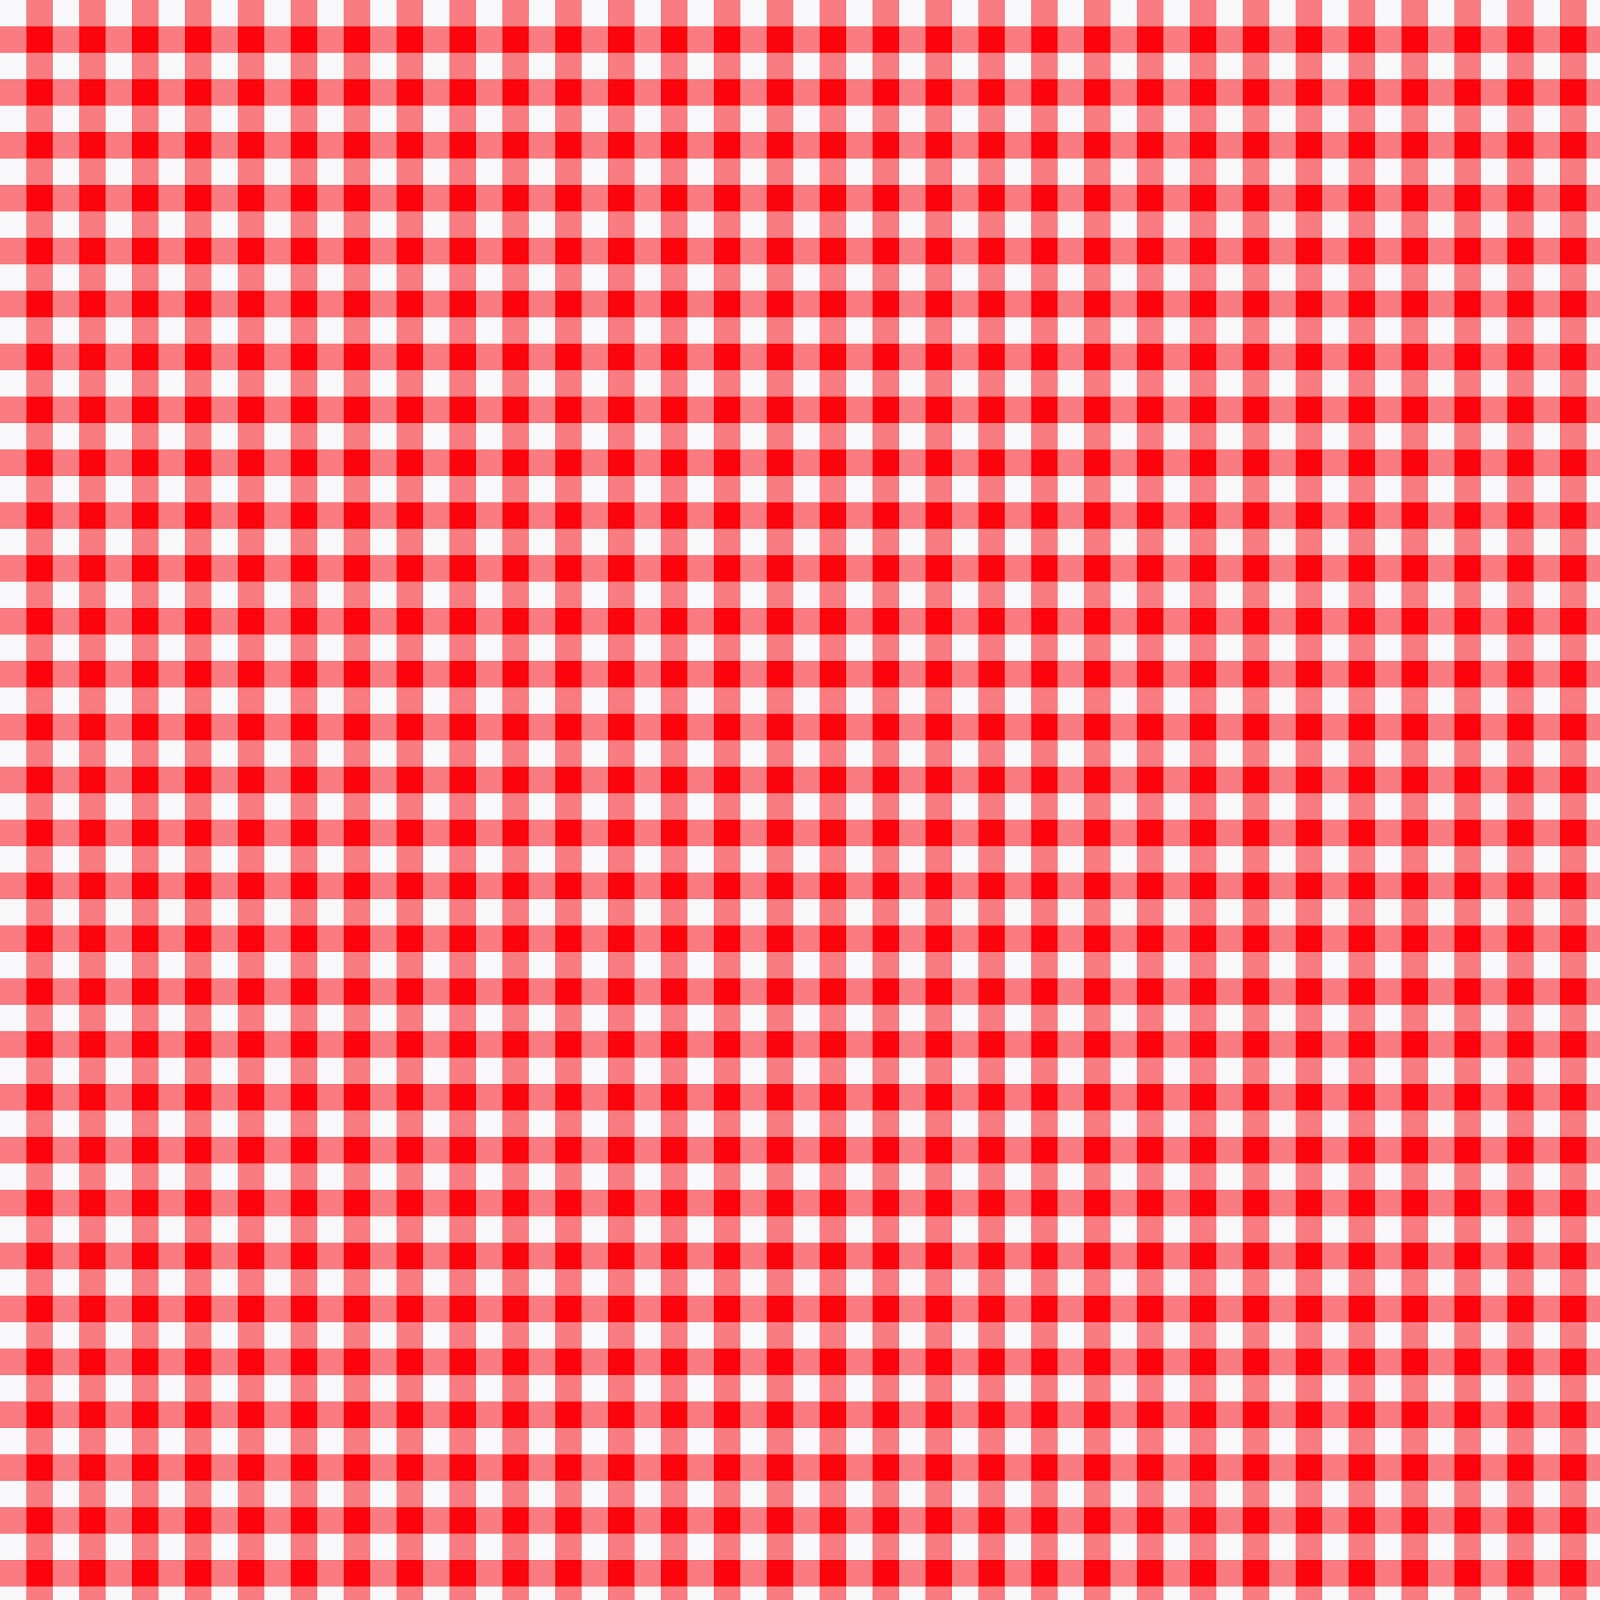 Red and white gingham wallpaper wallpapersafari for Red check wallpaper